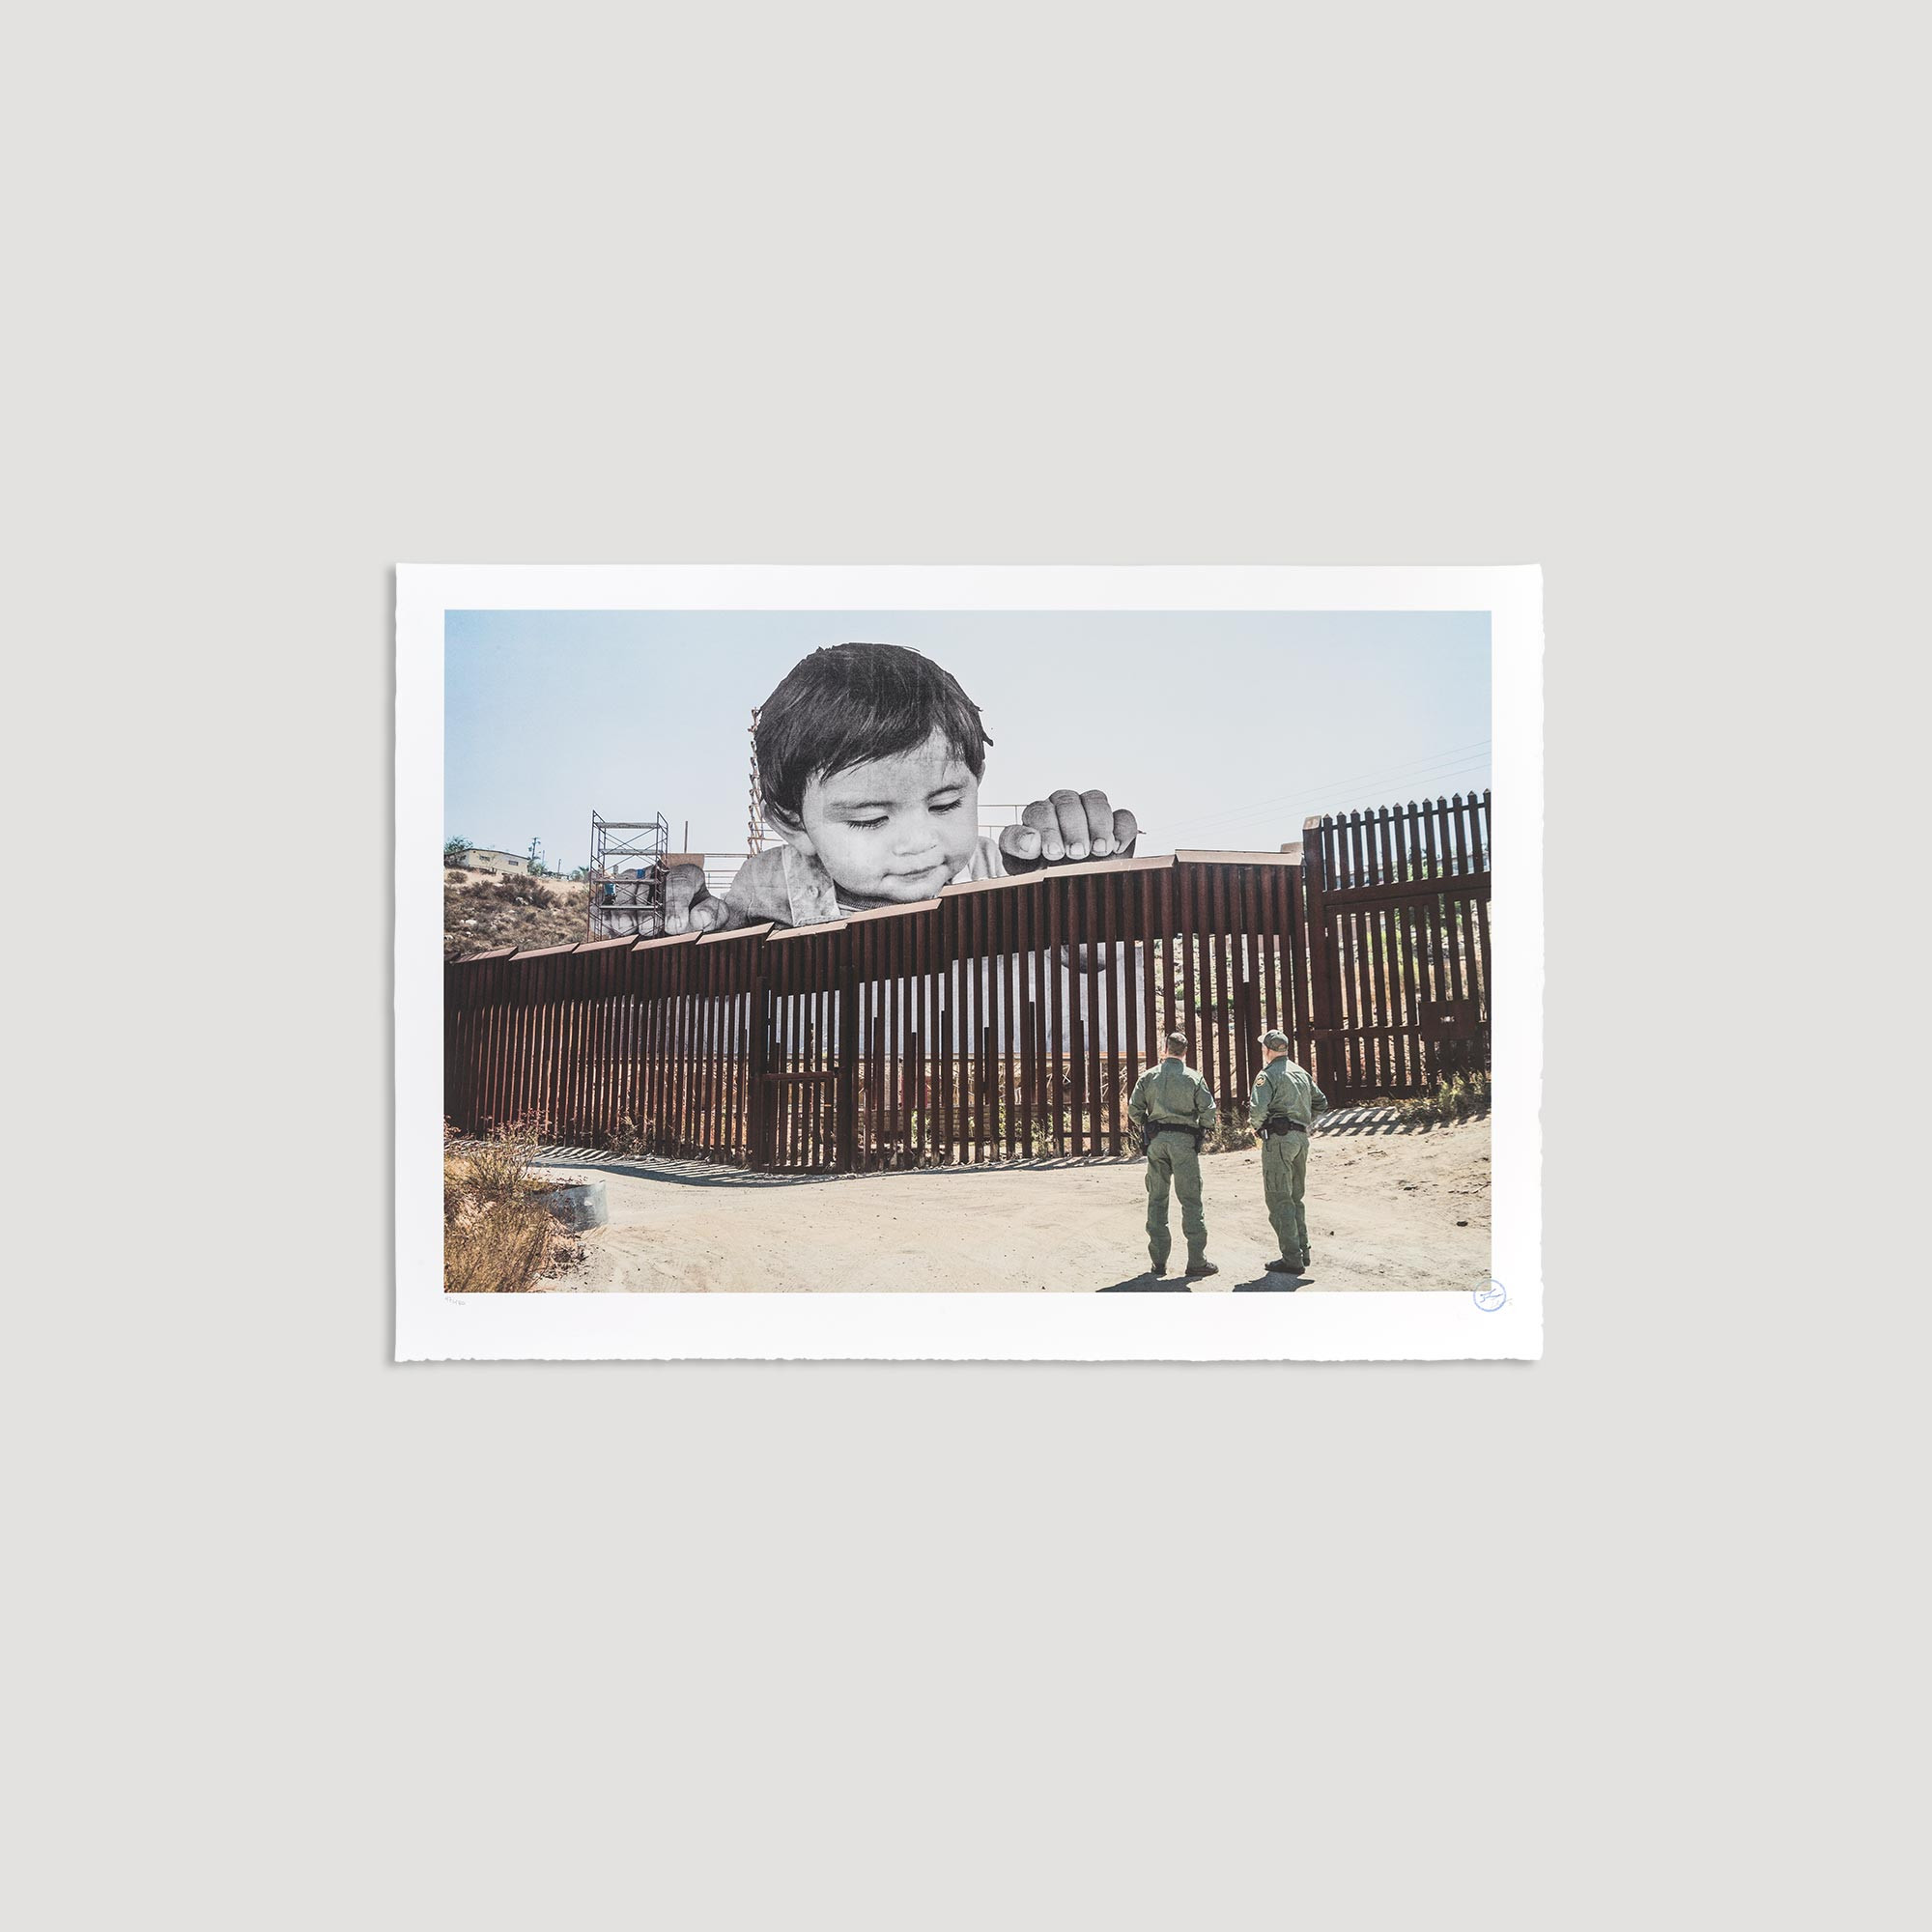 GIANTS, Kikito and the Border Patrol, Tecate, Mexico - U.S.A., 2017